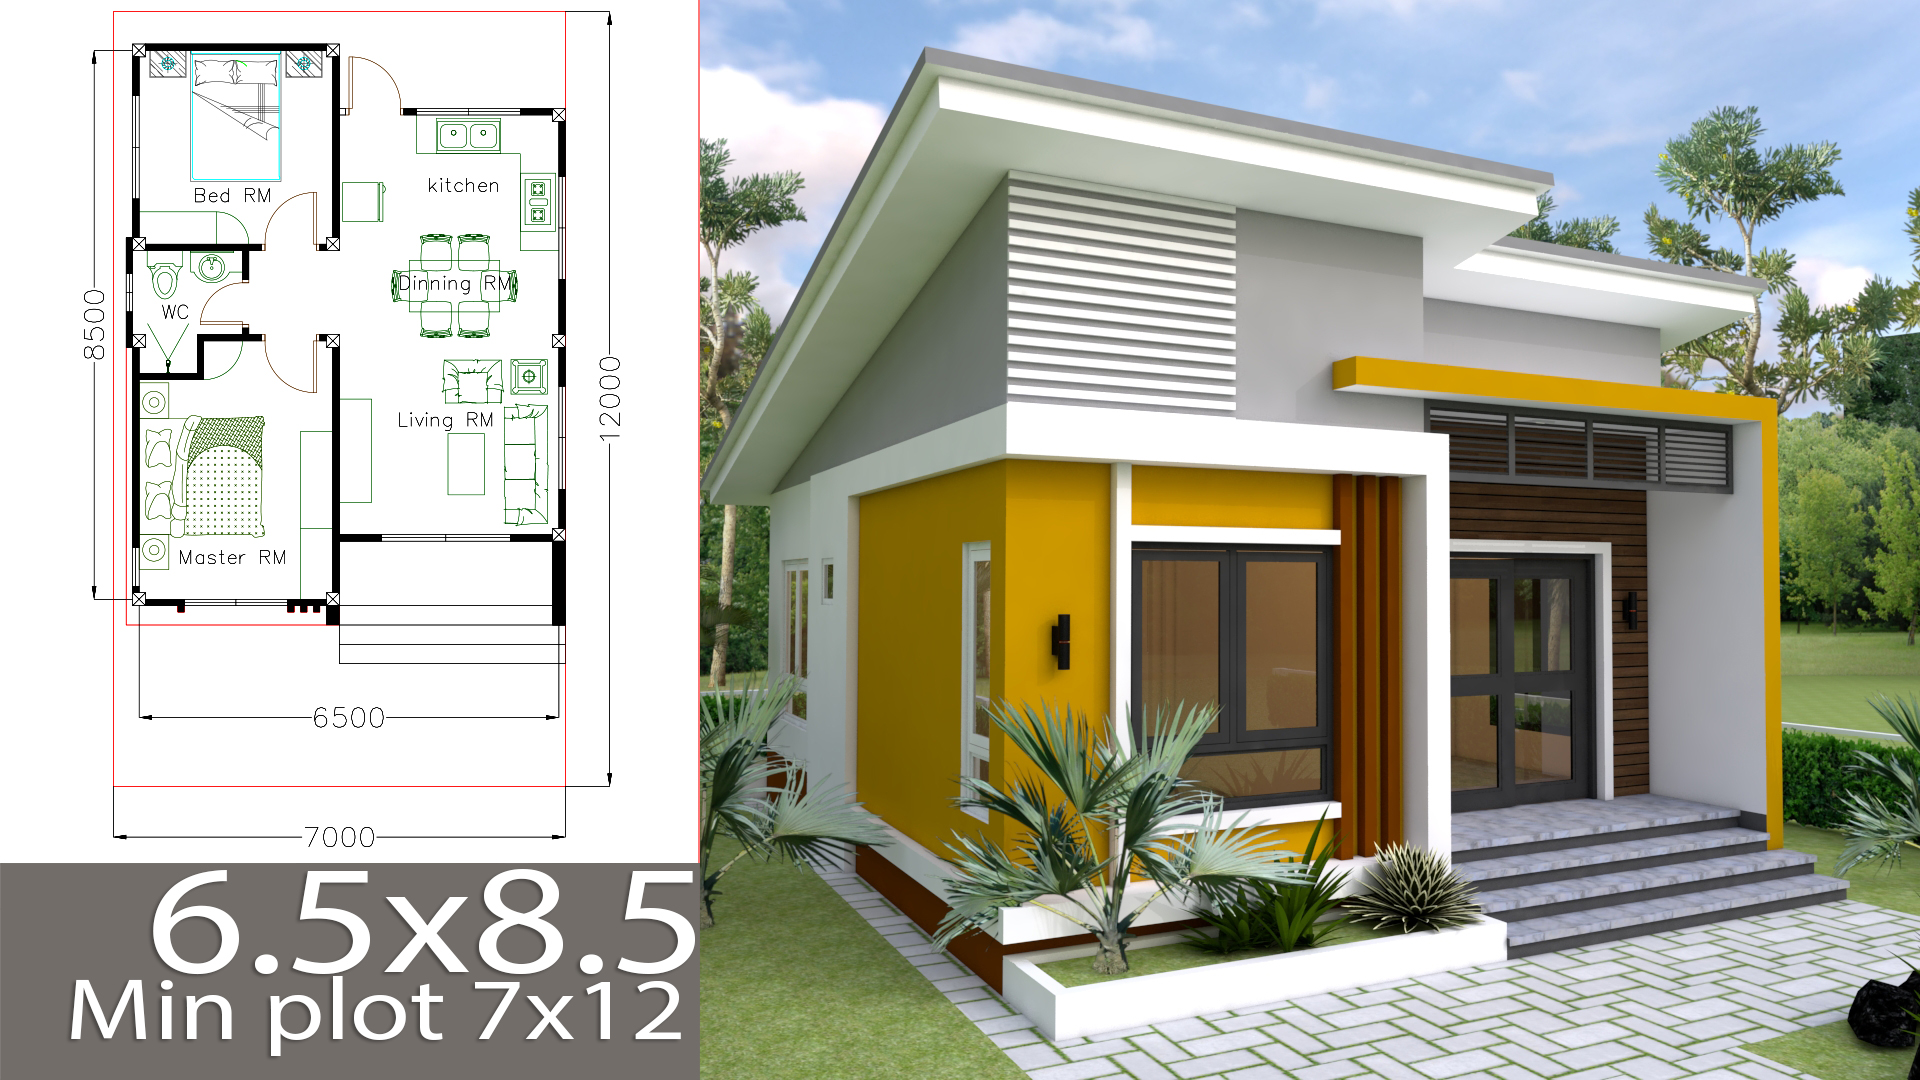 Small Home Plans: Small Home Design Plan 6.5x8.5m With 2 Bedrooms